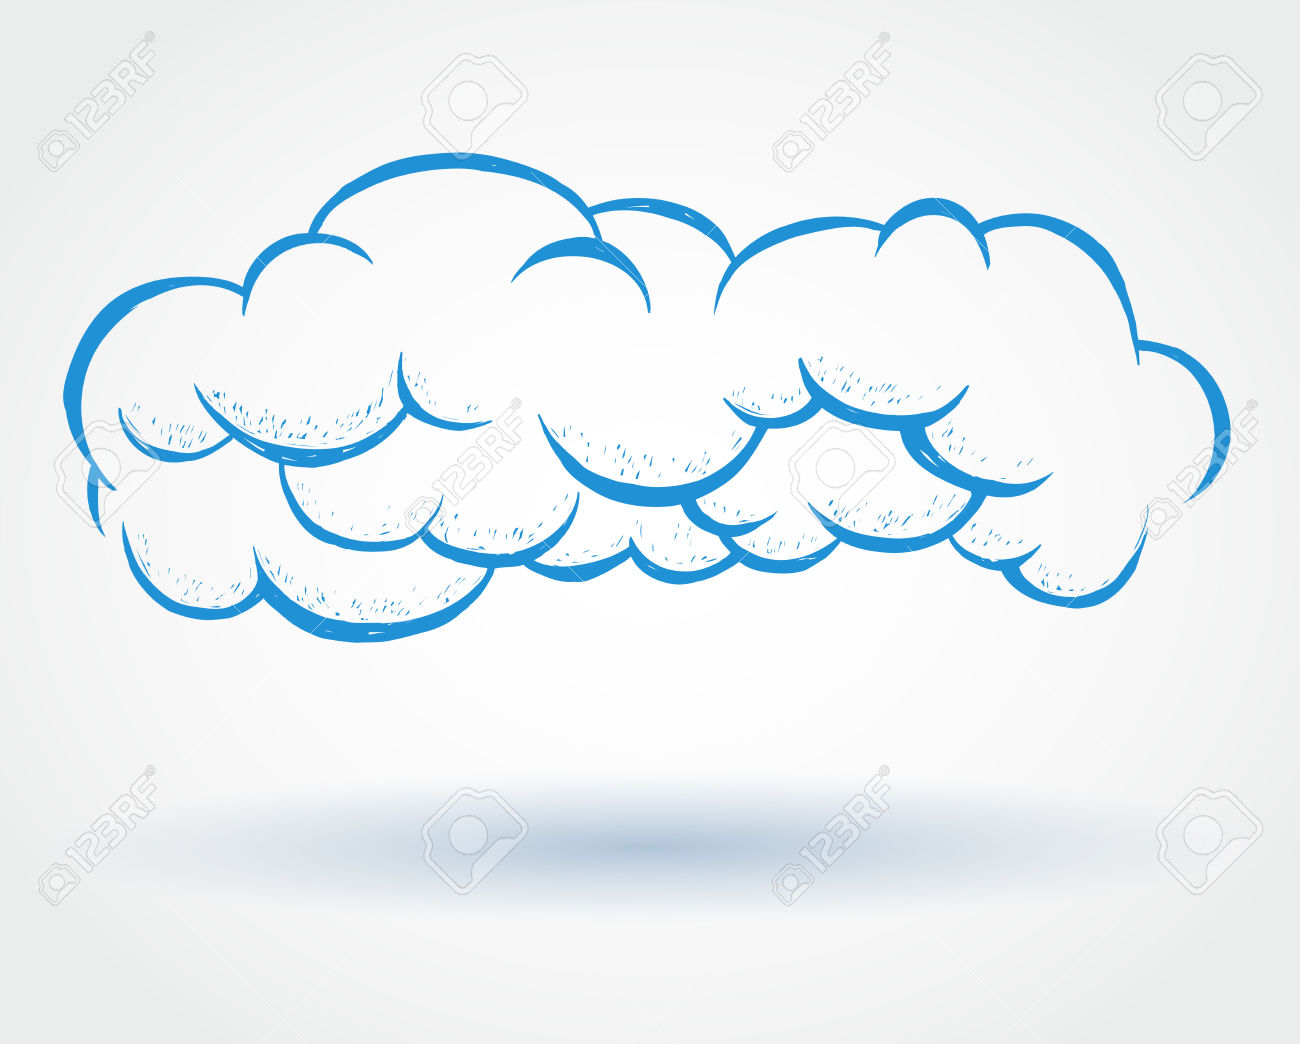 Blue Doodle Style Cloud Drawing With Shadow On White Background.